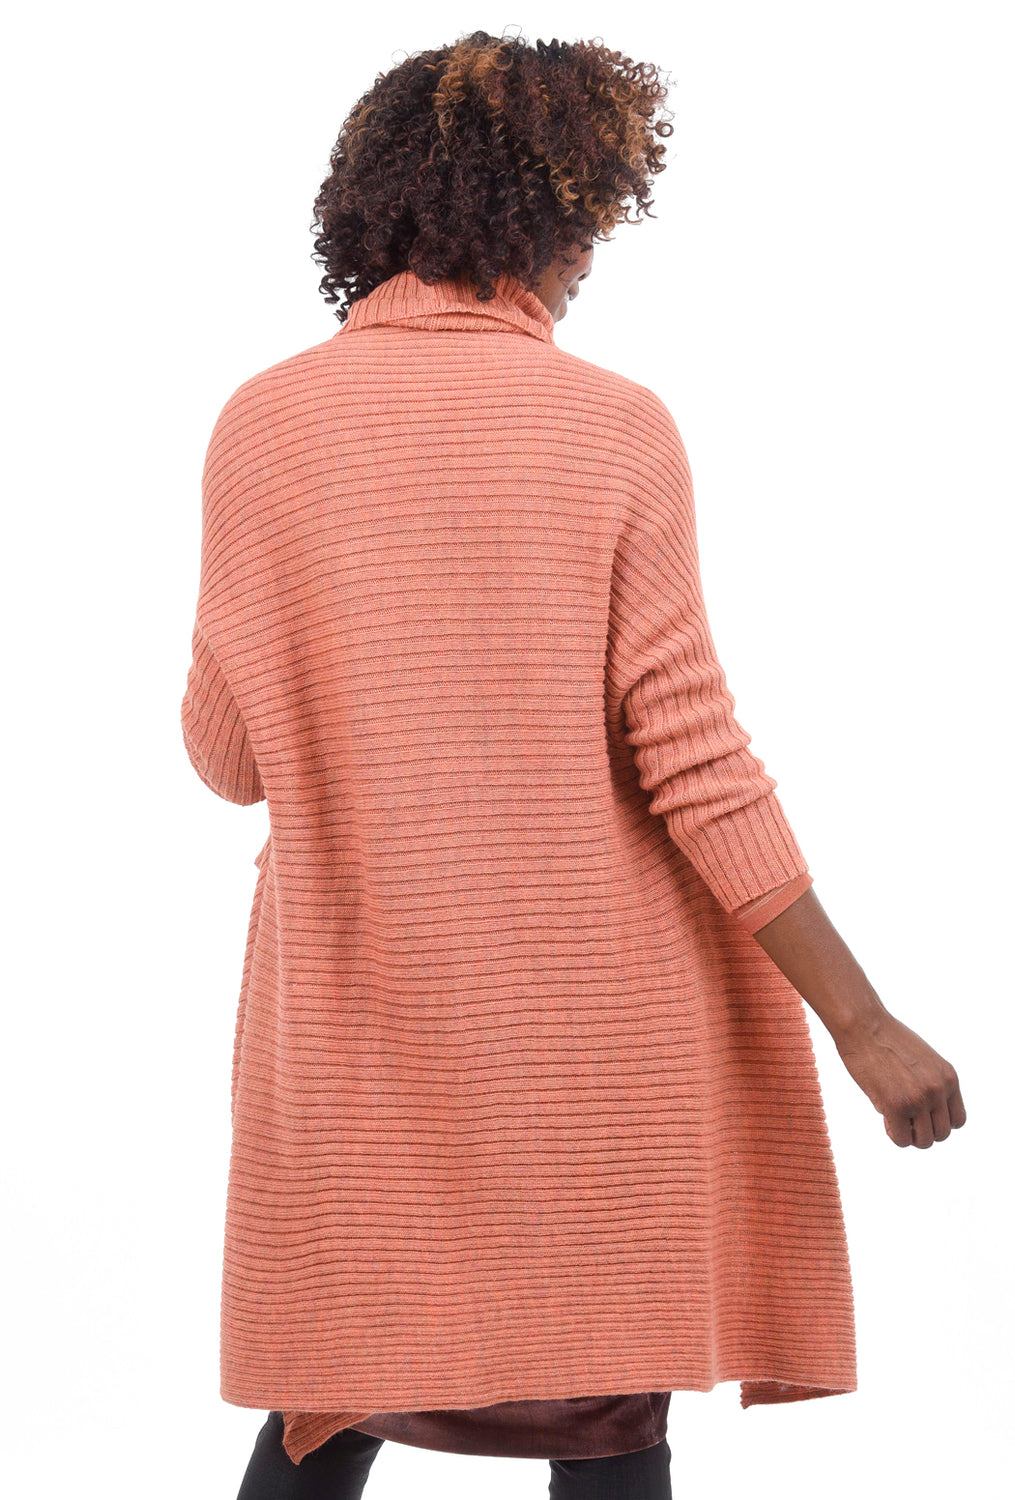 Crea Concept High-Low Funnel Sweater, Salmon